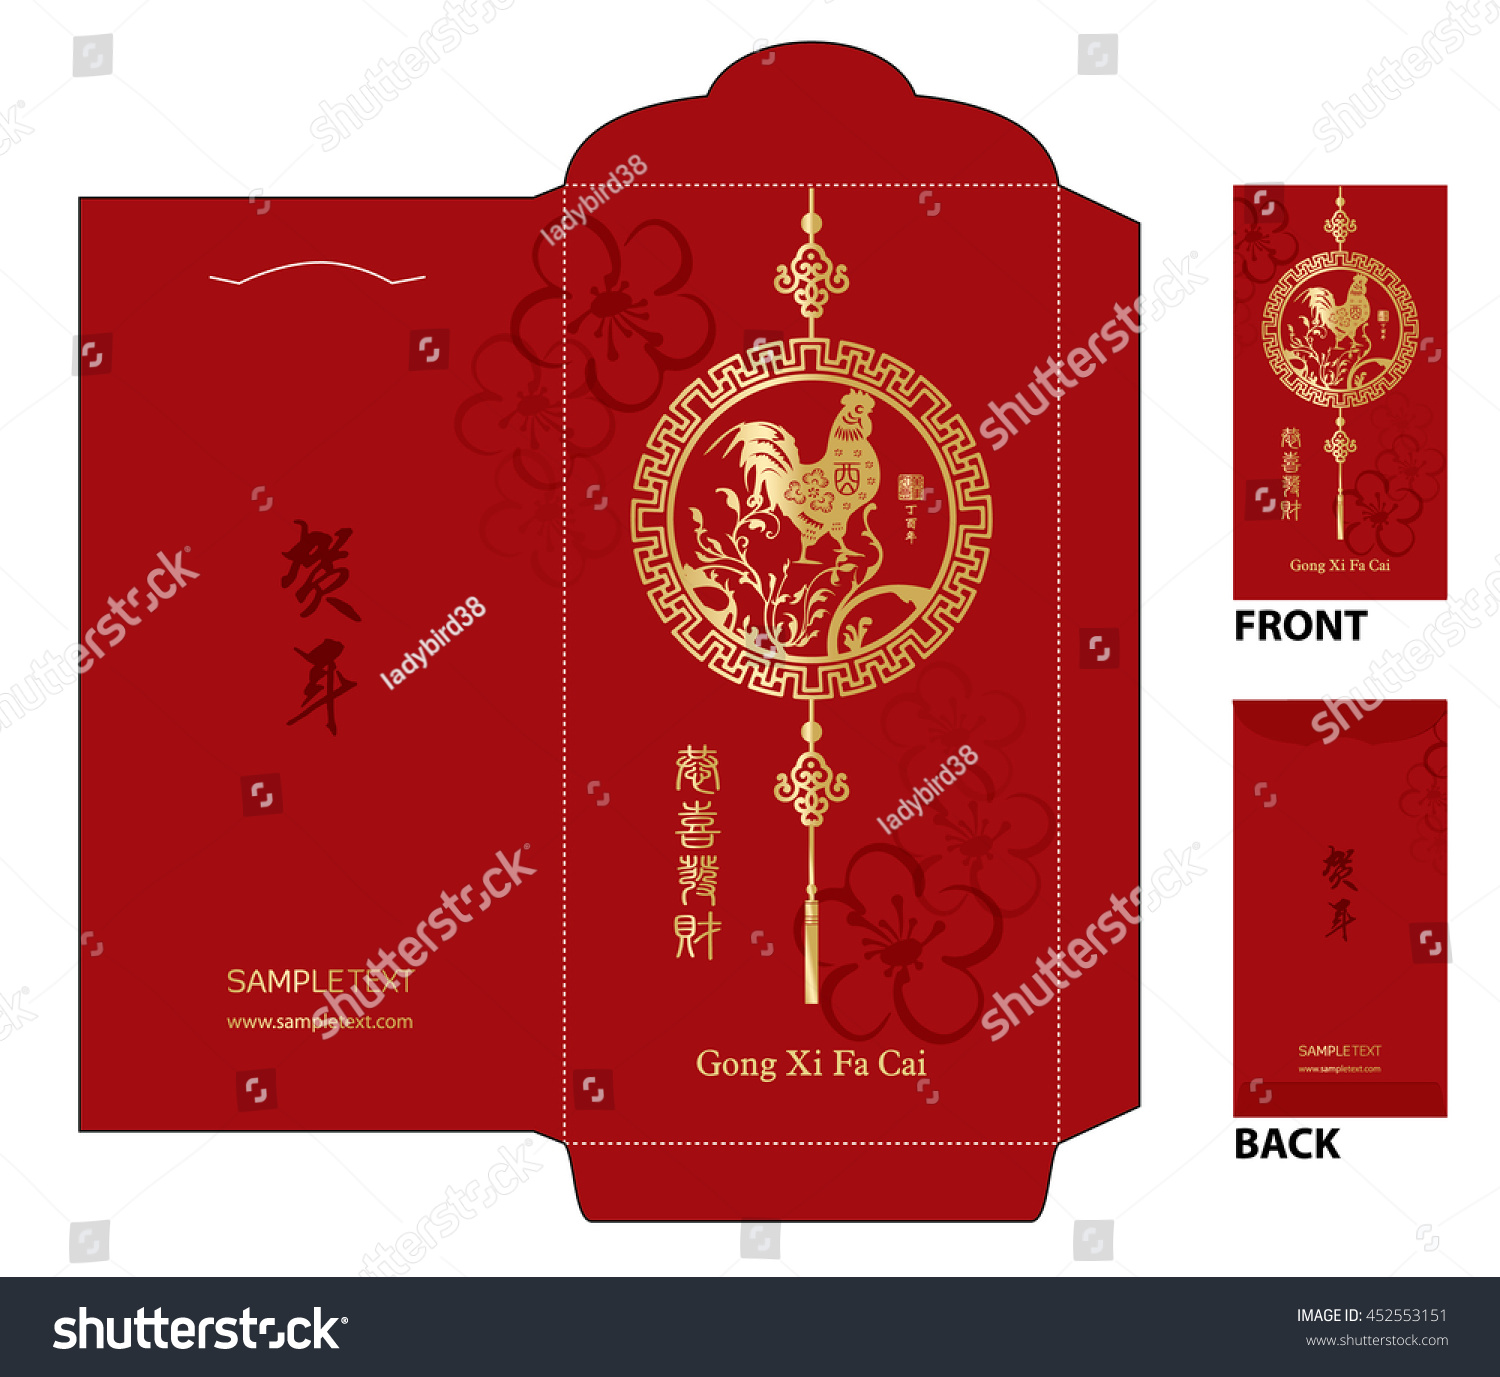 Royalty Free Chinese New Year Money Red Packet Ang 452553151